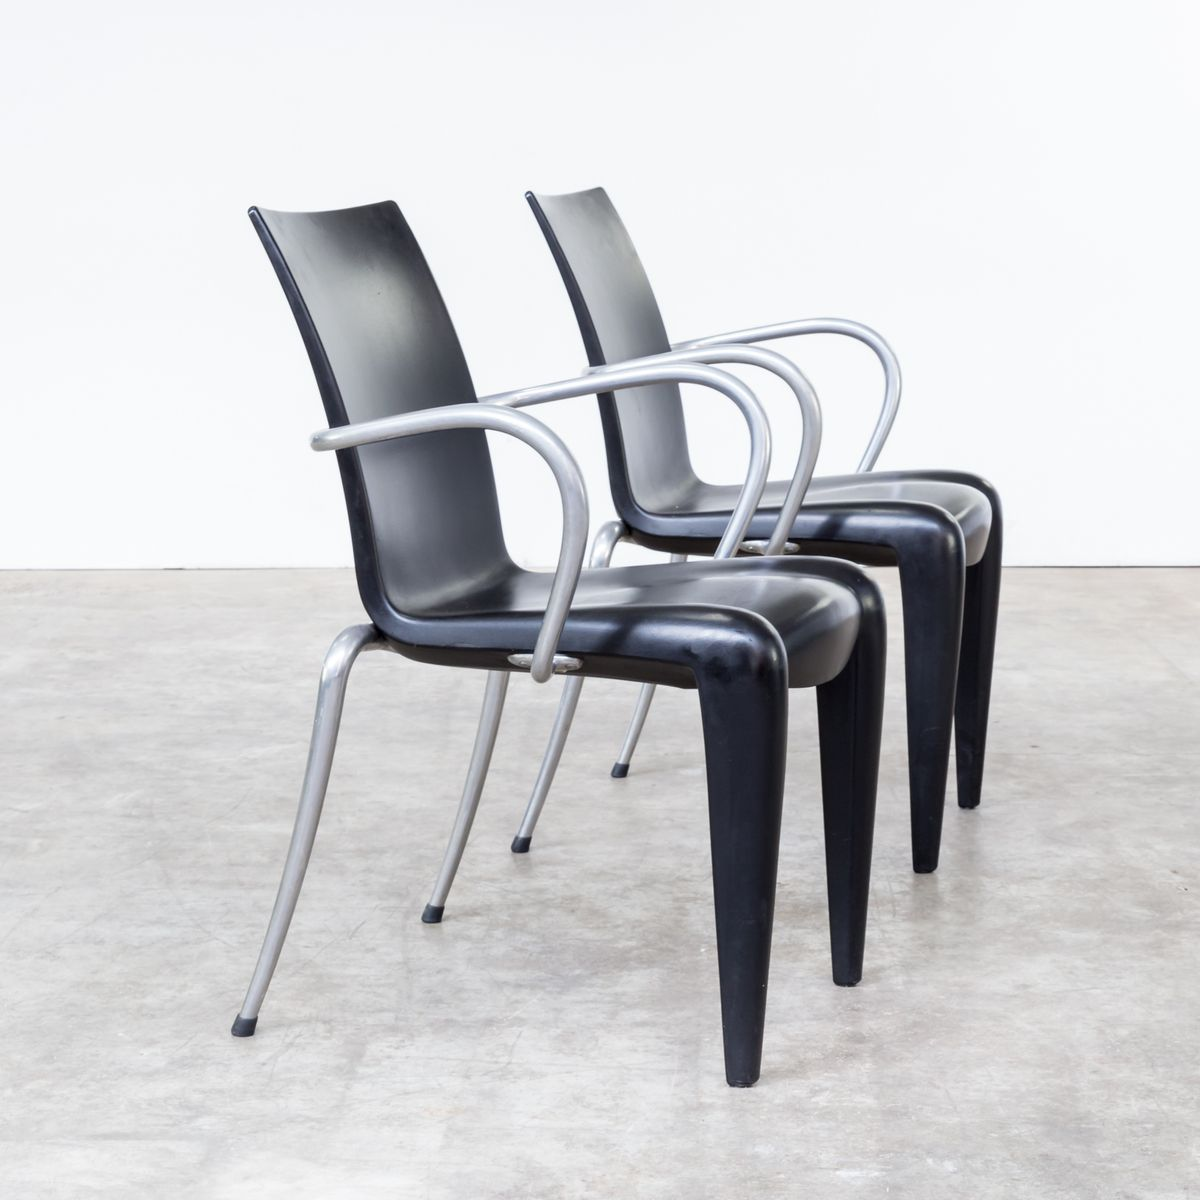 Louis 20 chairs by philippe starck for vitra 1990s set of 4 for sale at pamono for Philippe starck chair